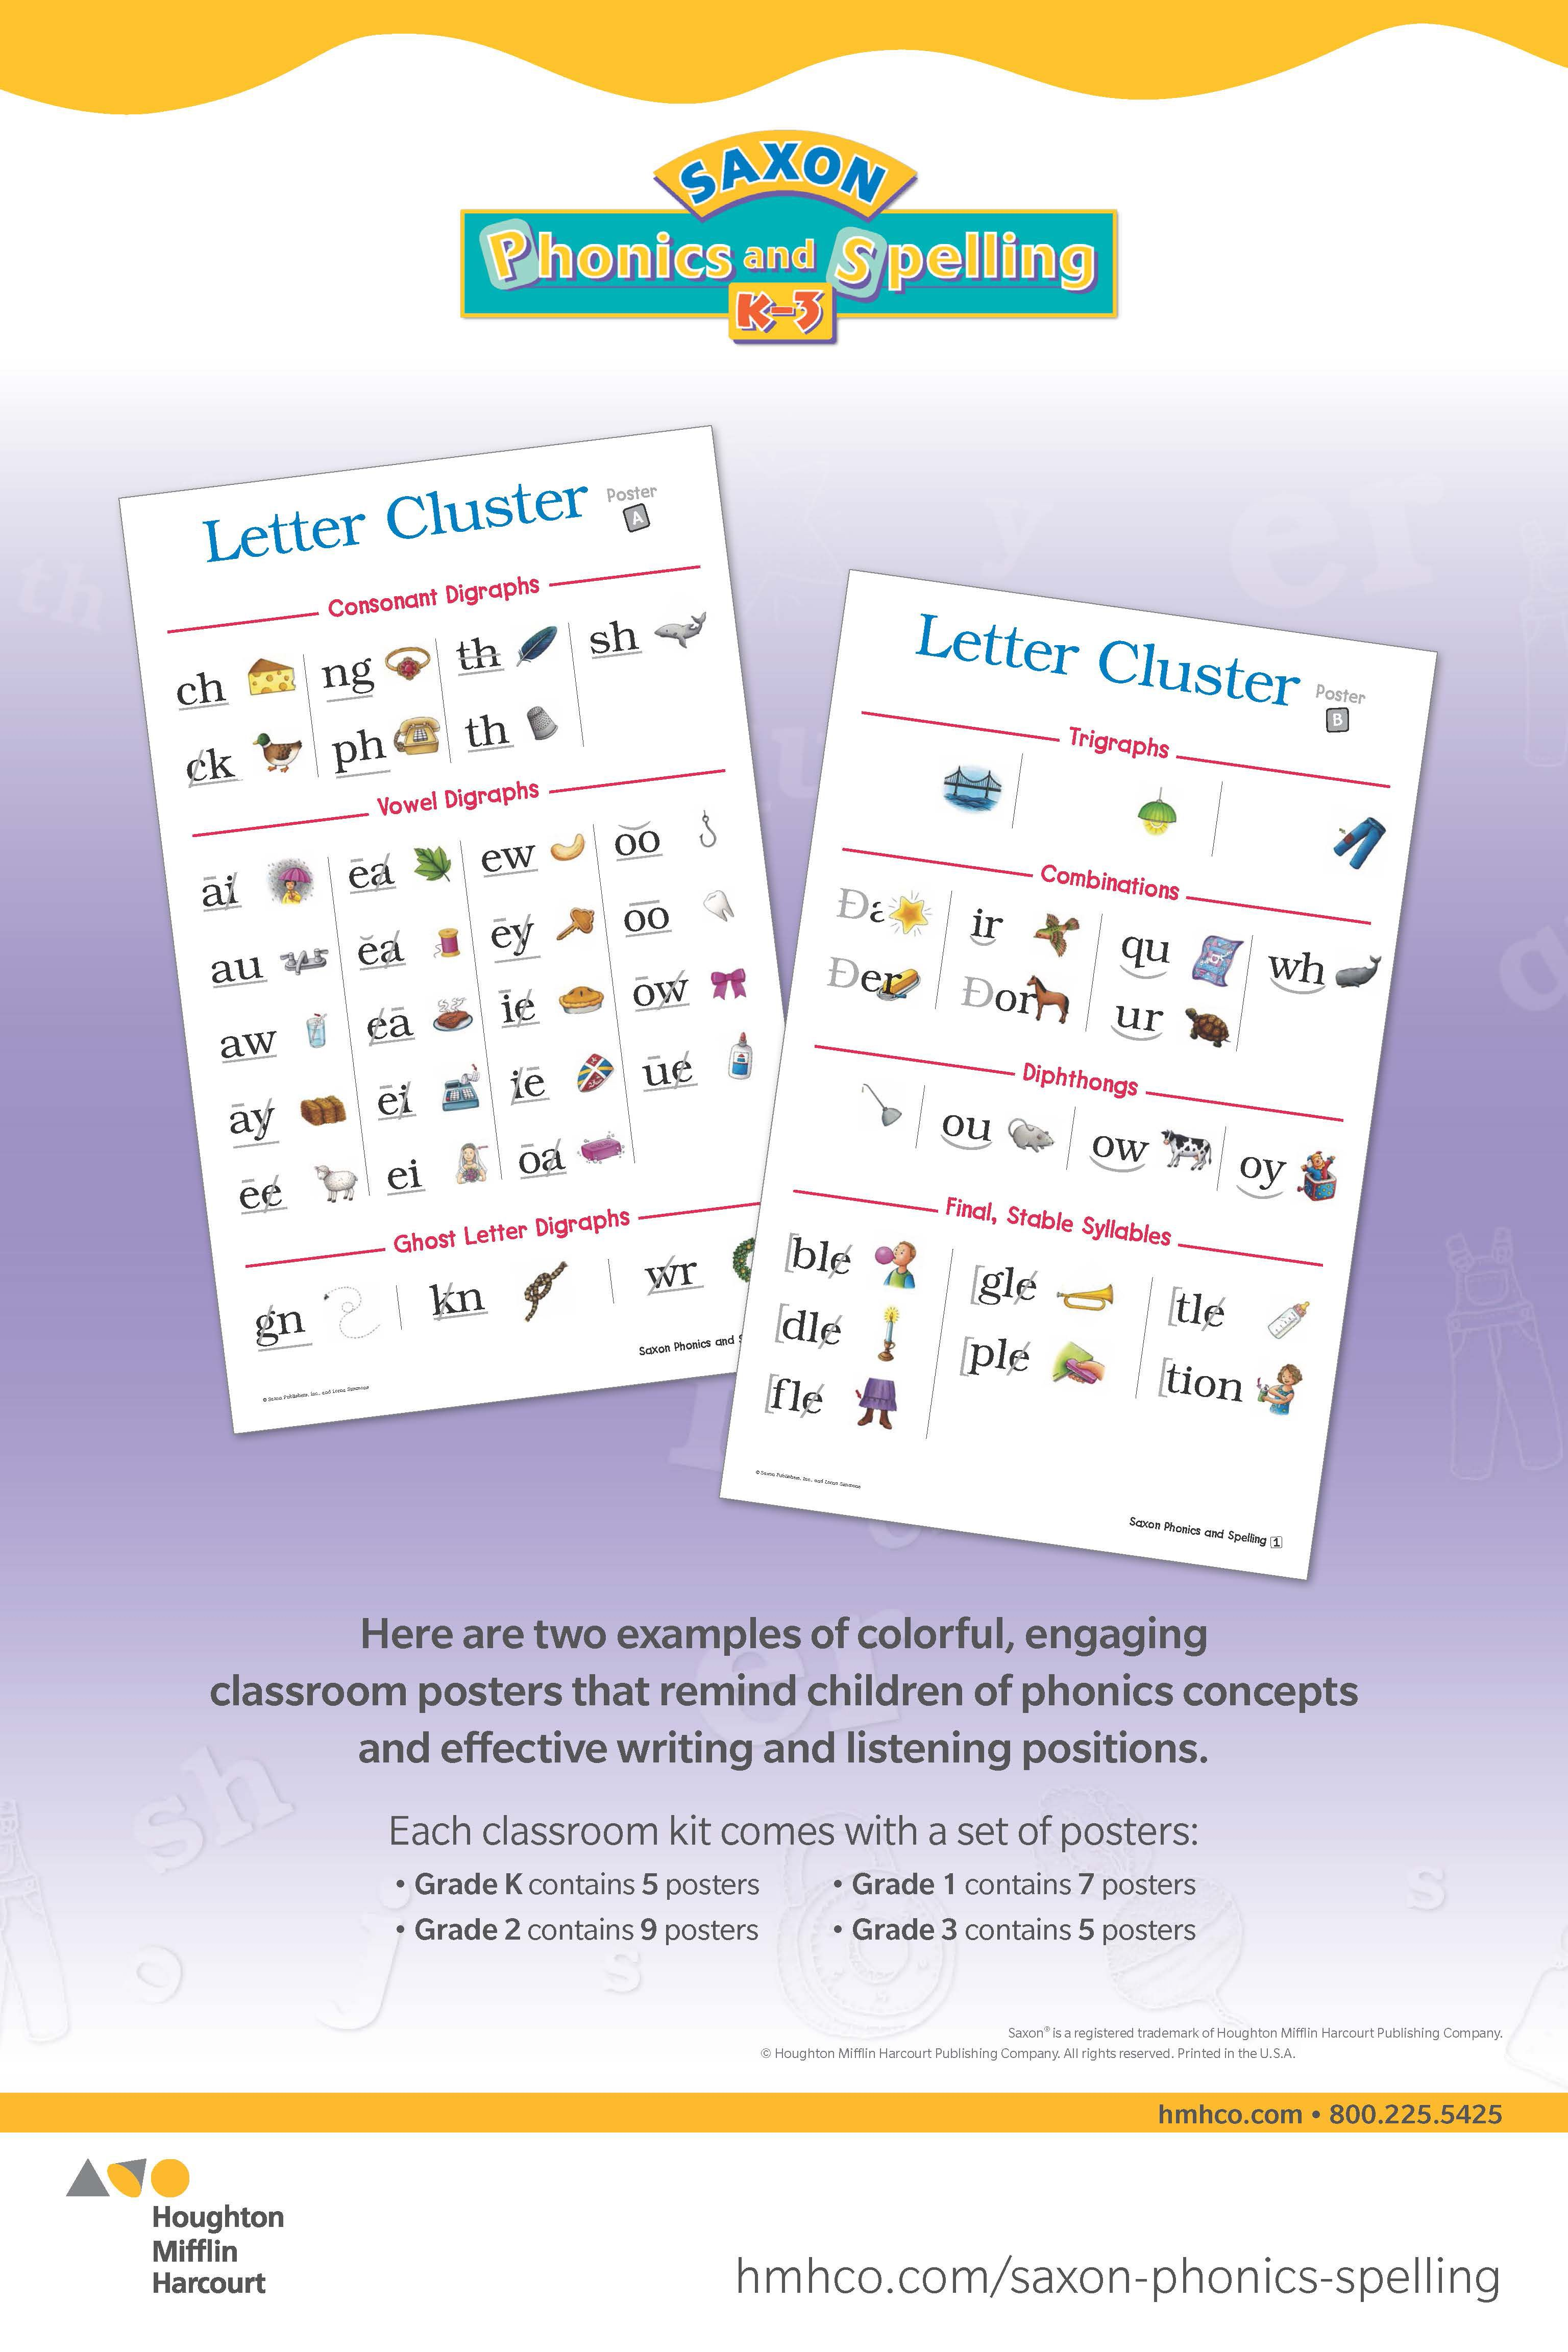 Enjoy These Examples Of Colorful Classroom Posters That Remind Children Of Phonics Concepts And Effective Writing Liste Saxon Phonics Phonics Reading Writing [ 4608 x 3072 Pixel ]